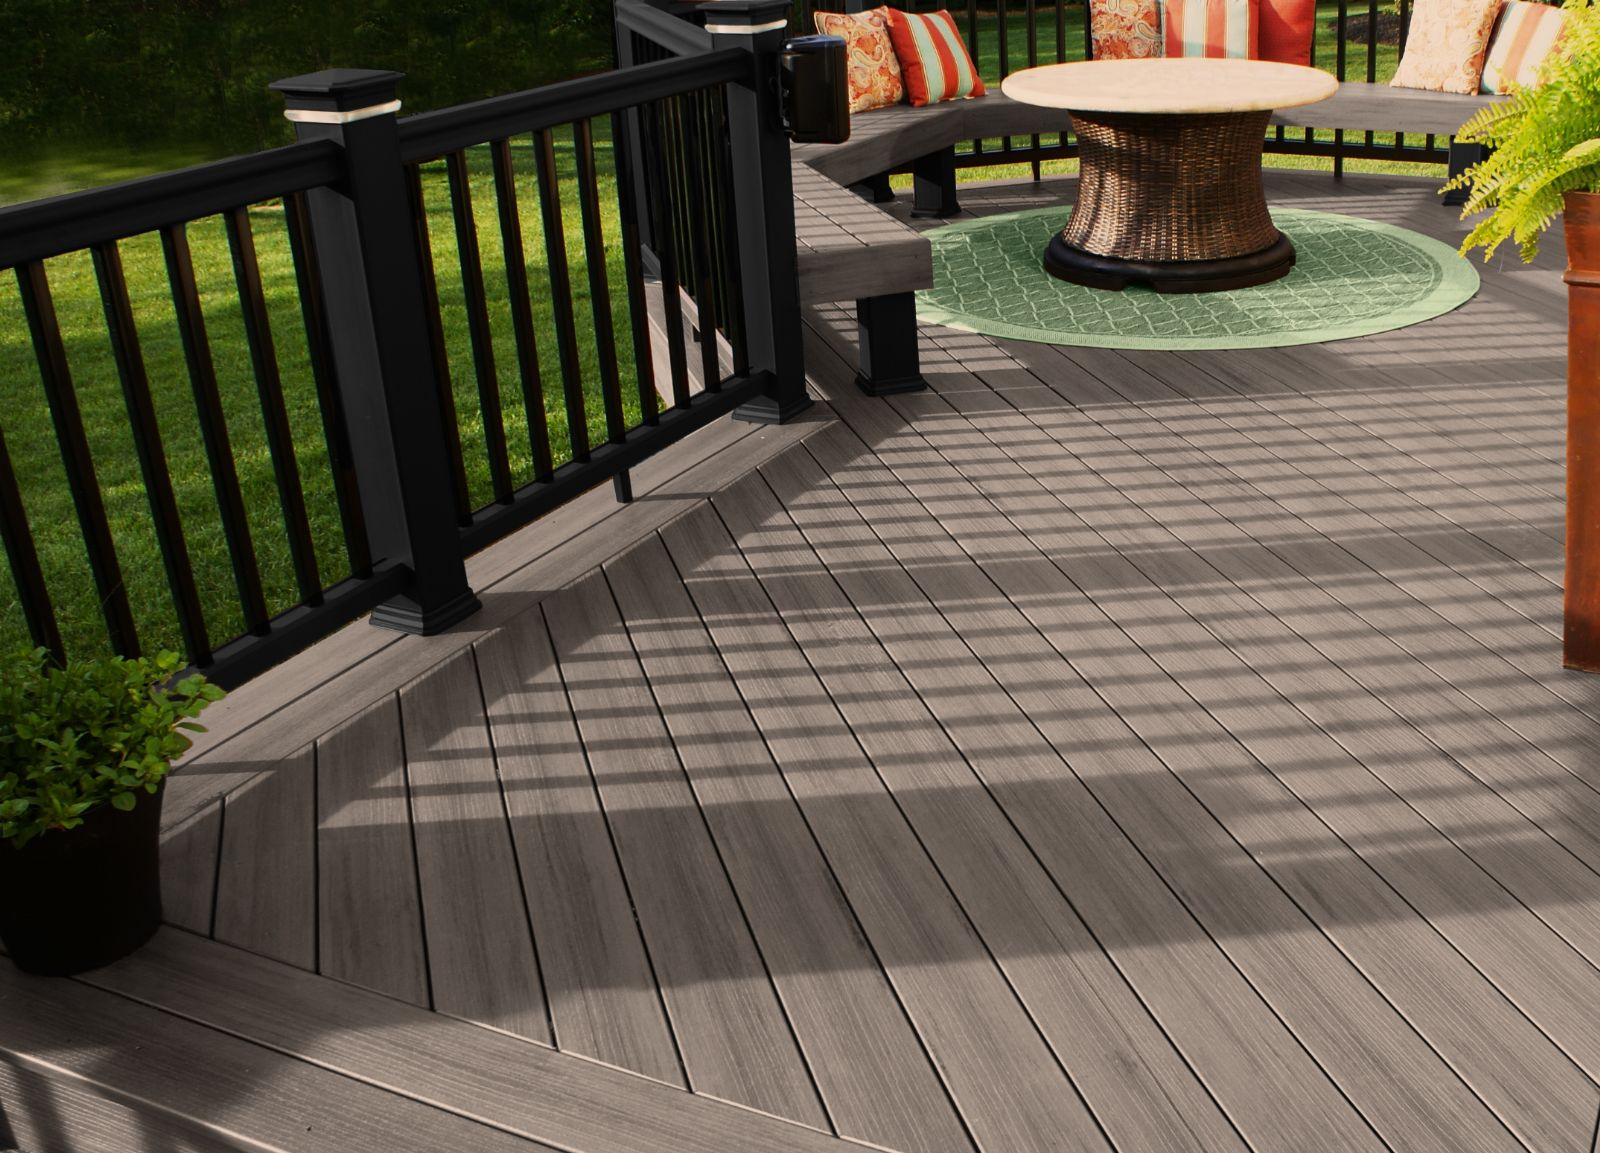 Evergrain Decking vs TimberTech Composite Which is Better?